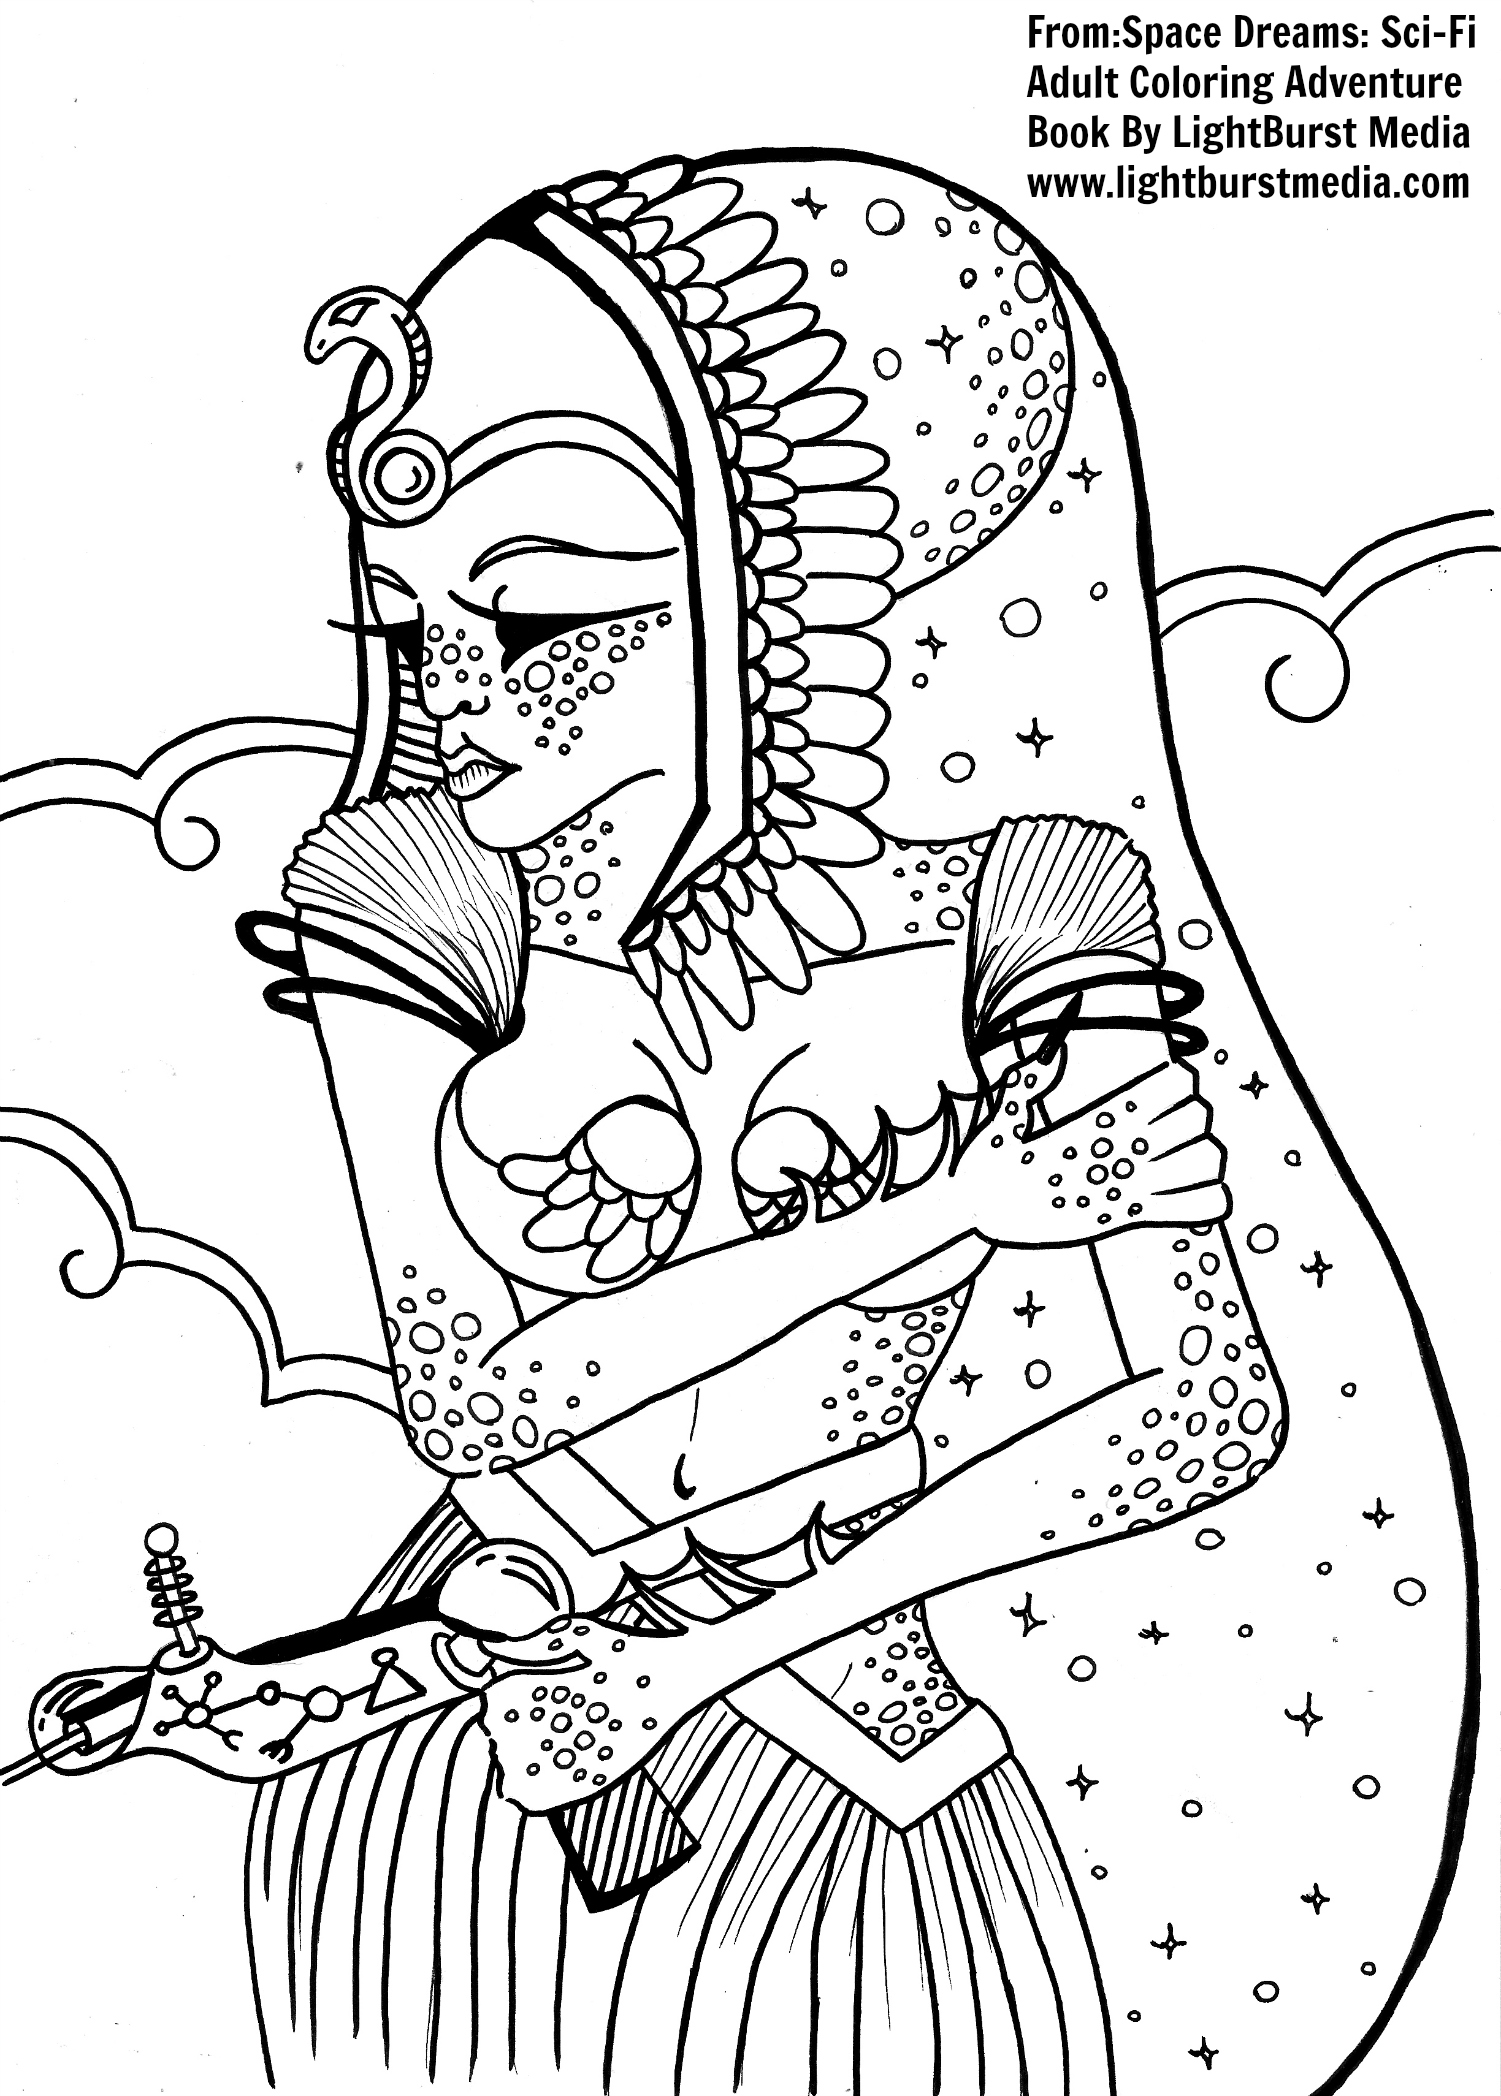 wwwfree coloring pagescom get this printable adult coloring pages quotes be still pagescom coloring wwwfree